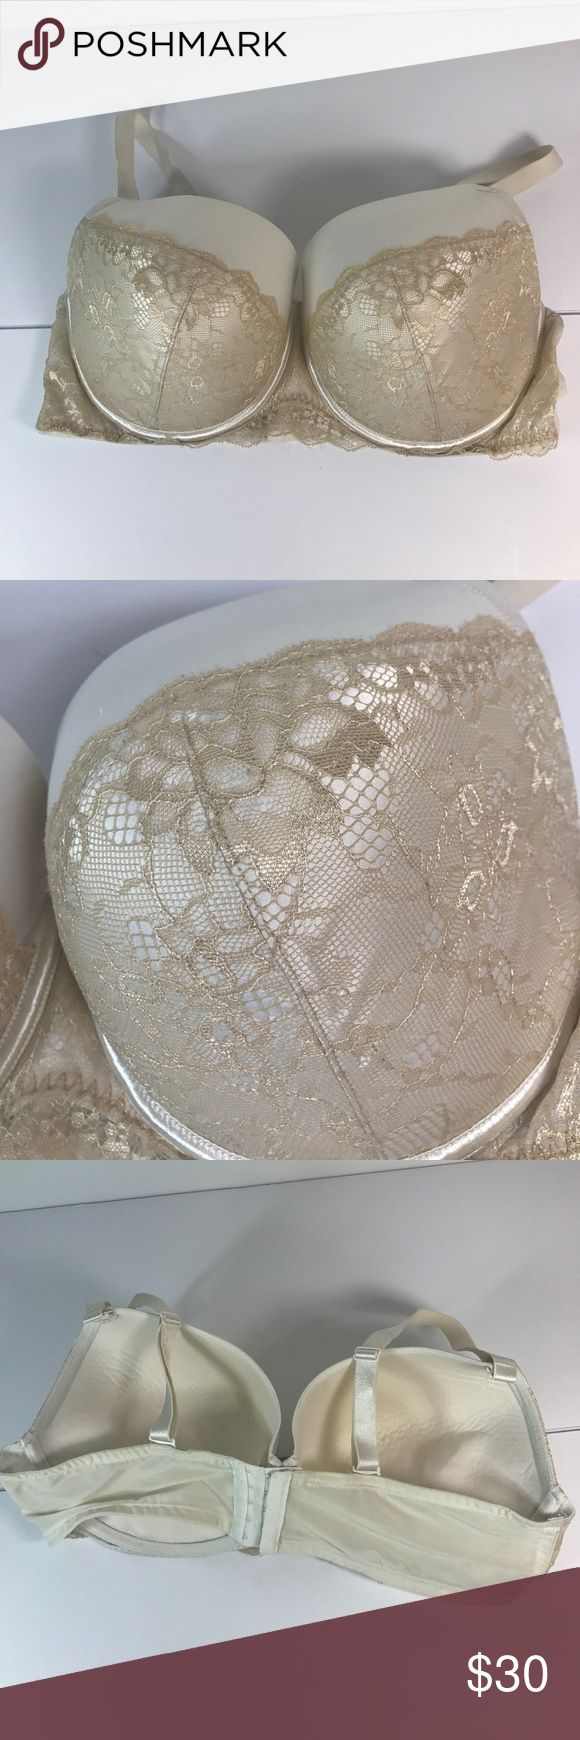 Cacique Full Coverage Lace Ivory Bra sexy padded Cacique Full Coverage Bra in a gorgeous Ivory with lacy trim! There is a small mark on it. Lightly padded with Underwire. 44DD  💯Offers are welcome ❤️ 🚫No trades, Don't ask.  🚫No modeling  🚫no sales off poshmark Cacique Intimates & Sleepwear Bras